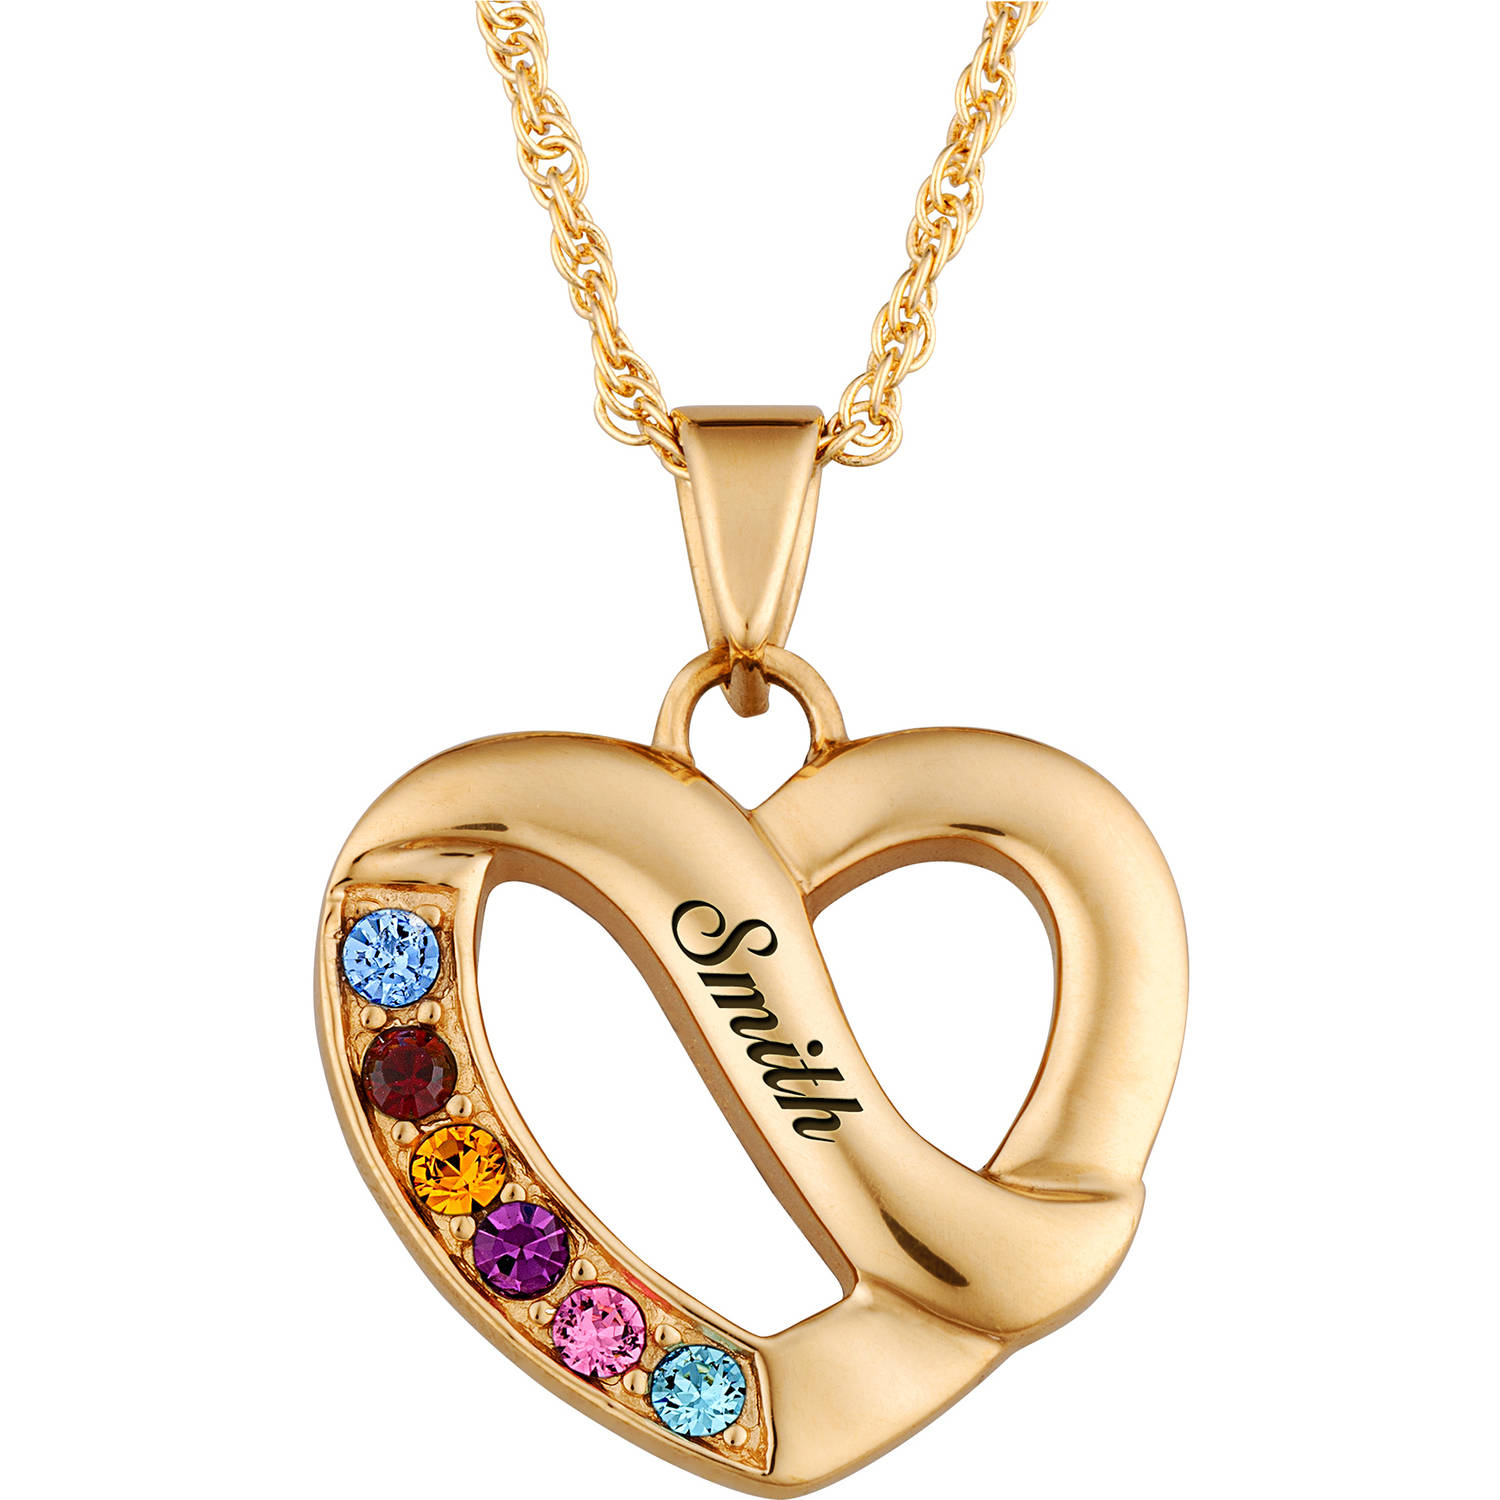 Personalized 14kt Gold-Plated Family Name & Birthstone Heart Necklace